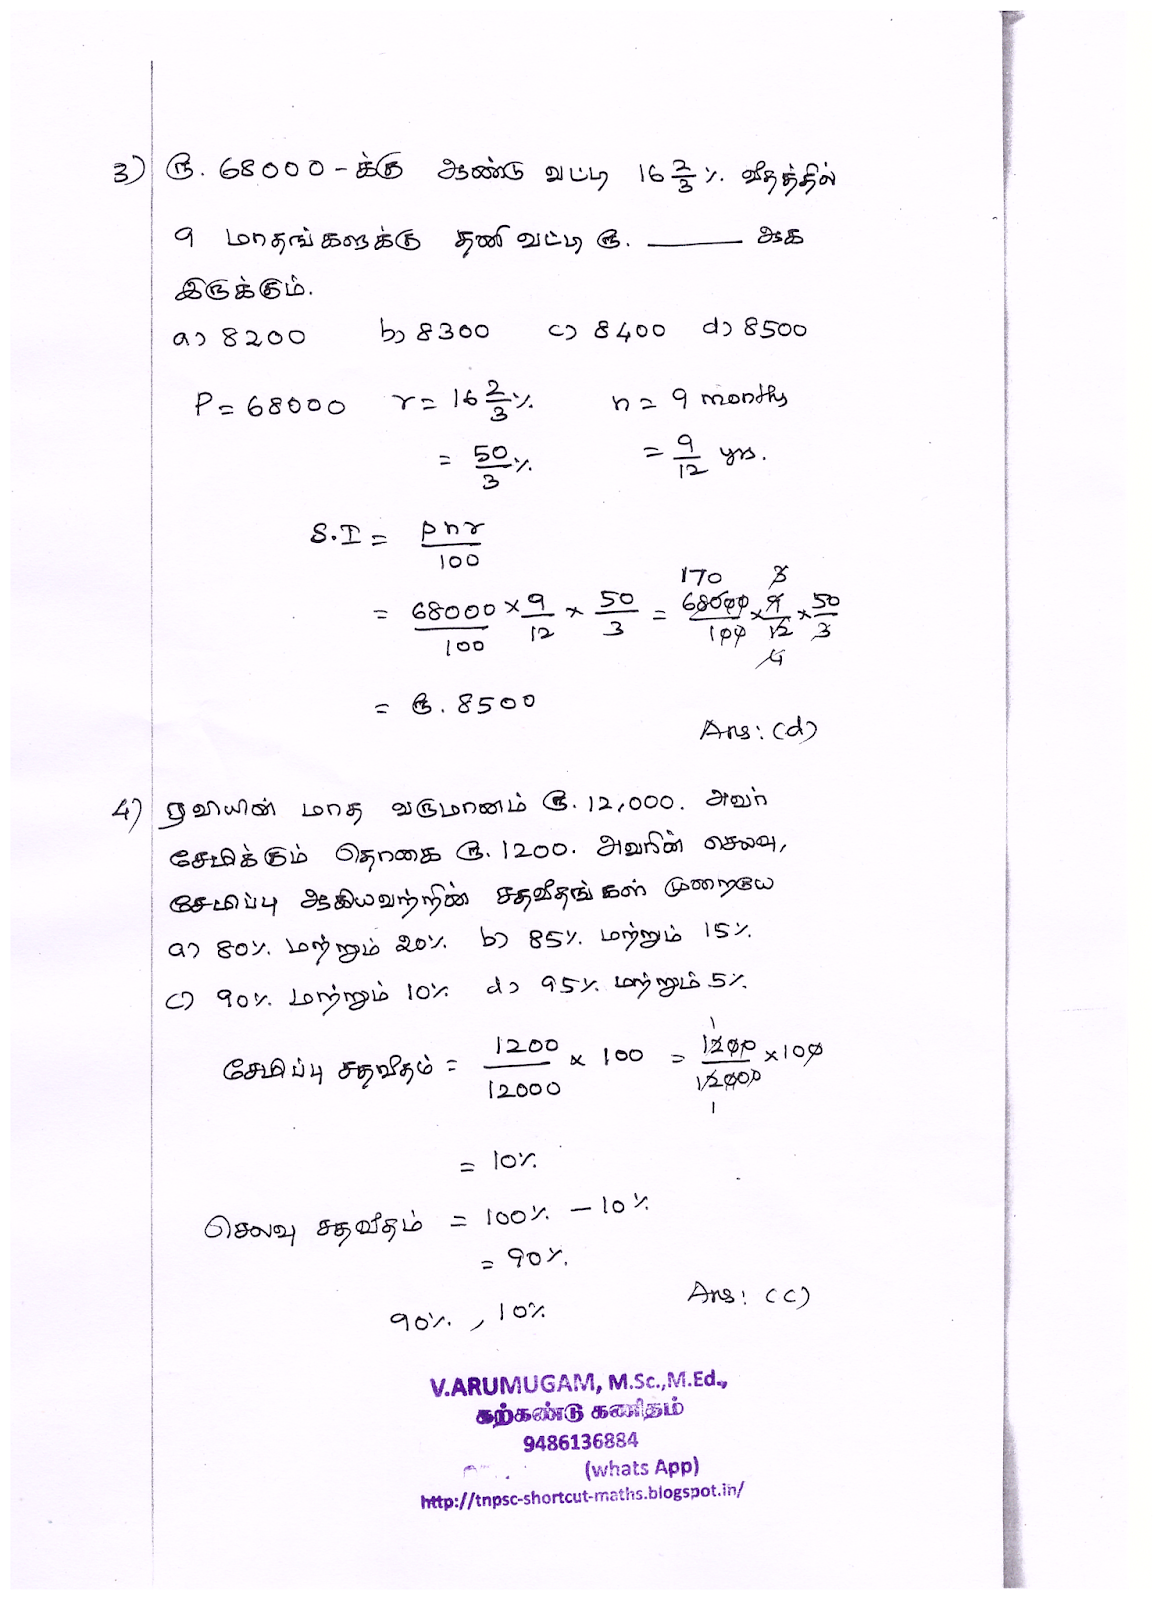 TNPSC – 2019 - Executive Officer, Grade-III  in the Tamil Nadu Hindu Religious and Charitable Endowments Subordinate Service included in Group-VII-B Services EXAM - EXAM DATE: 16.02.2019